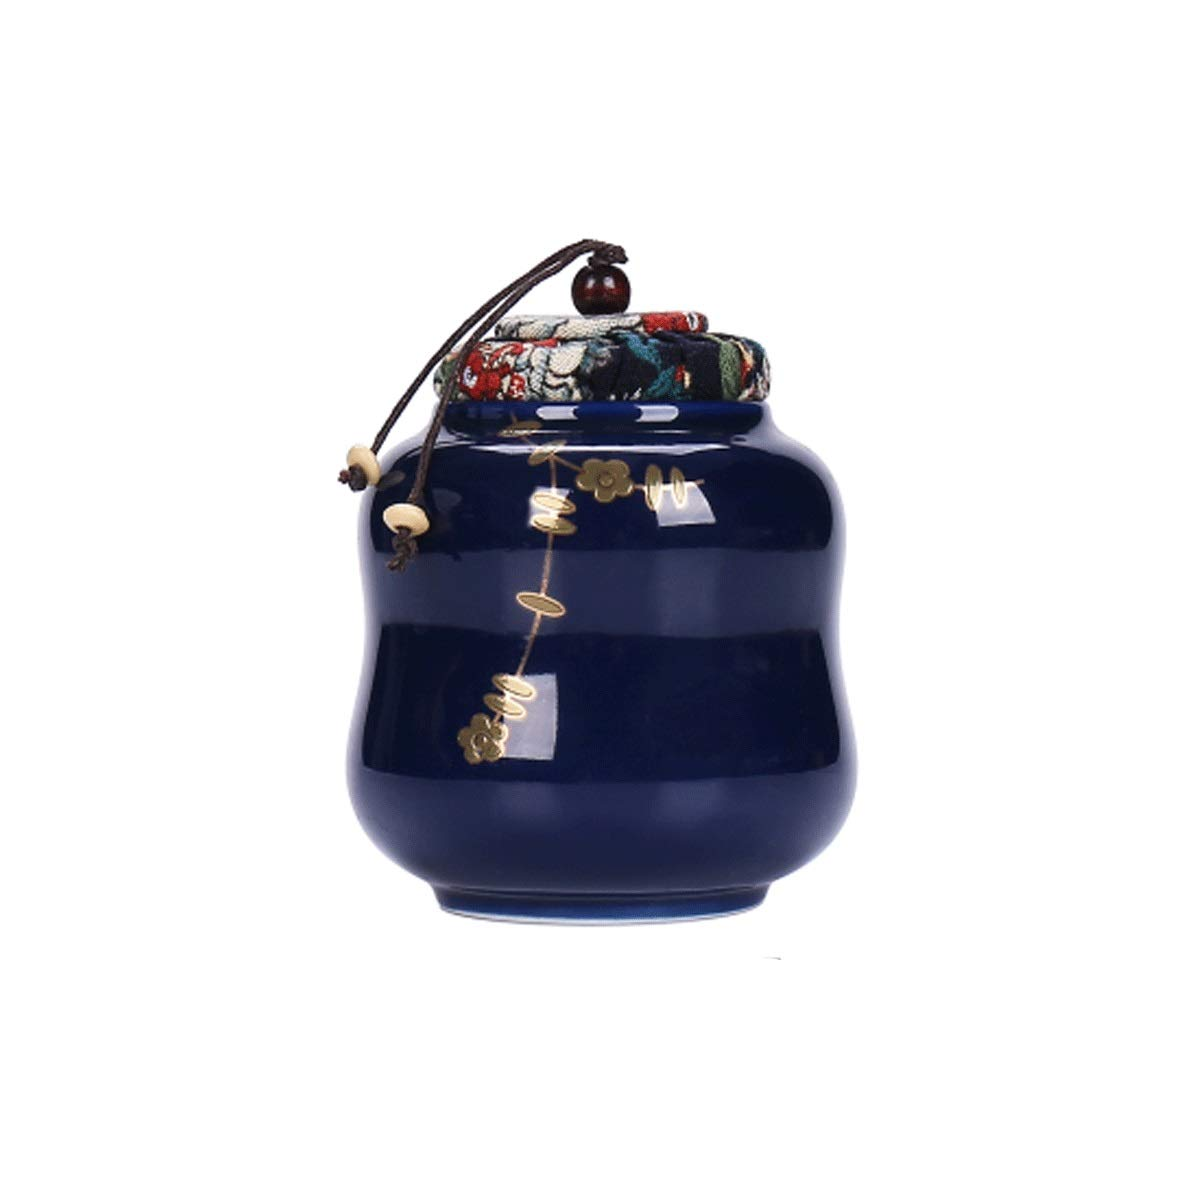 J Huijunwenti Pet Casket, Pet Urn, Cremation Urns For Pets, Functional Urn, Ceramic Sealed, Moisture Proof, Keepsake Box For Dogs And Cats, urns, available in a variety of styles latest models